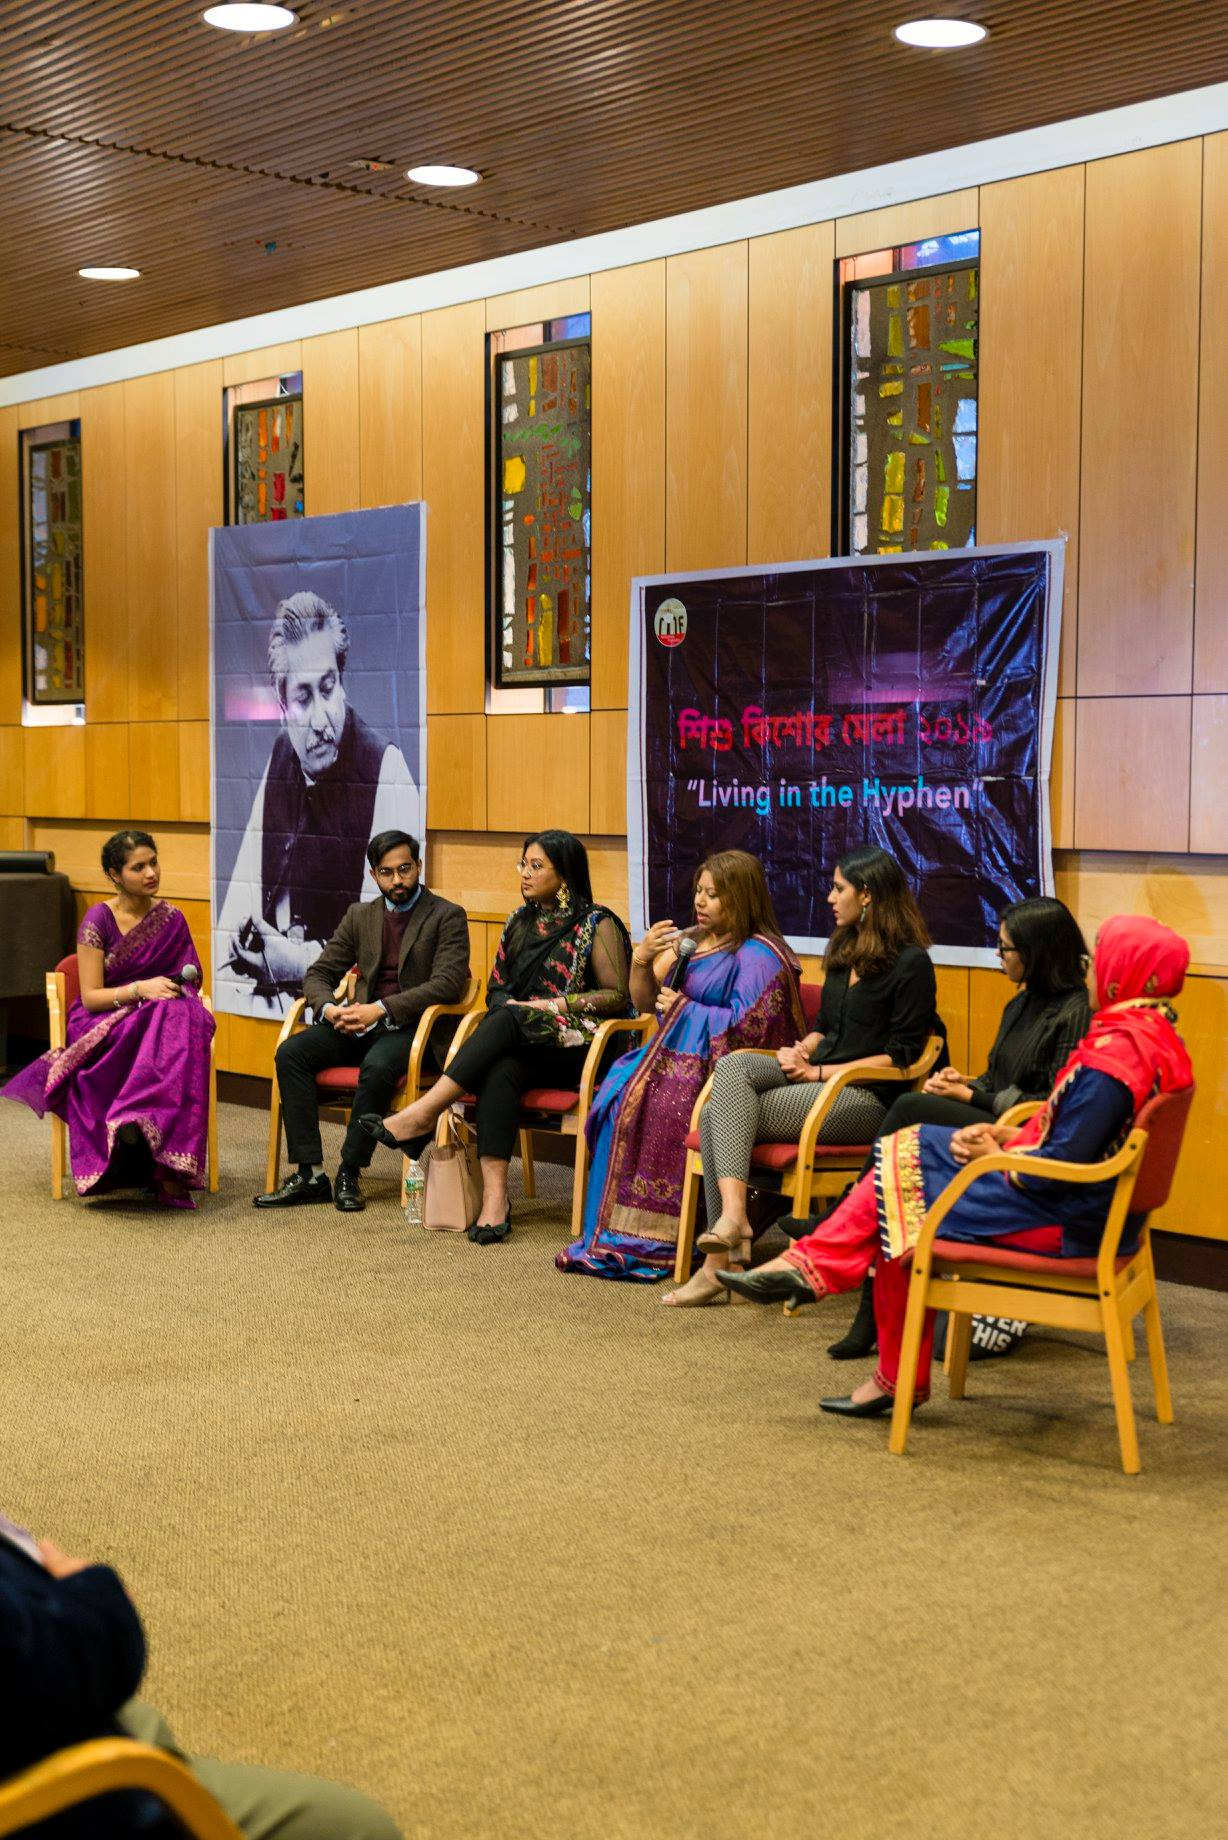 2020-ypf-panel-discussion-photo-by-wasi-ferdous-54515524